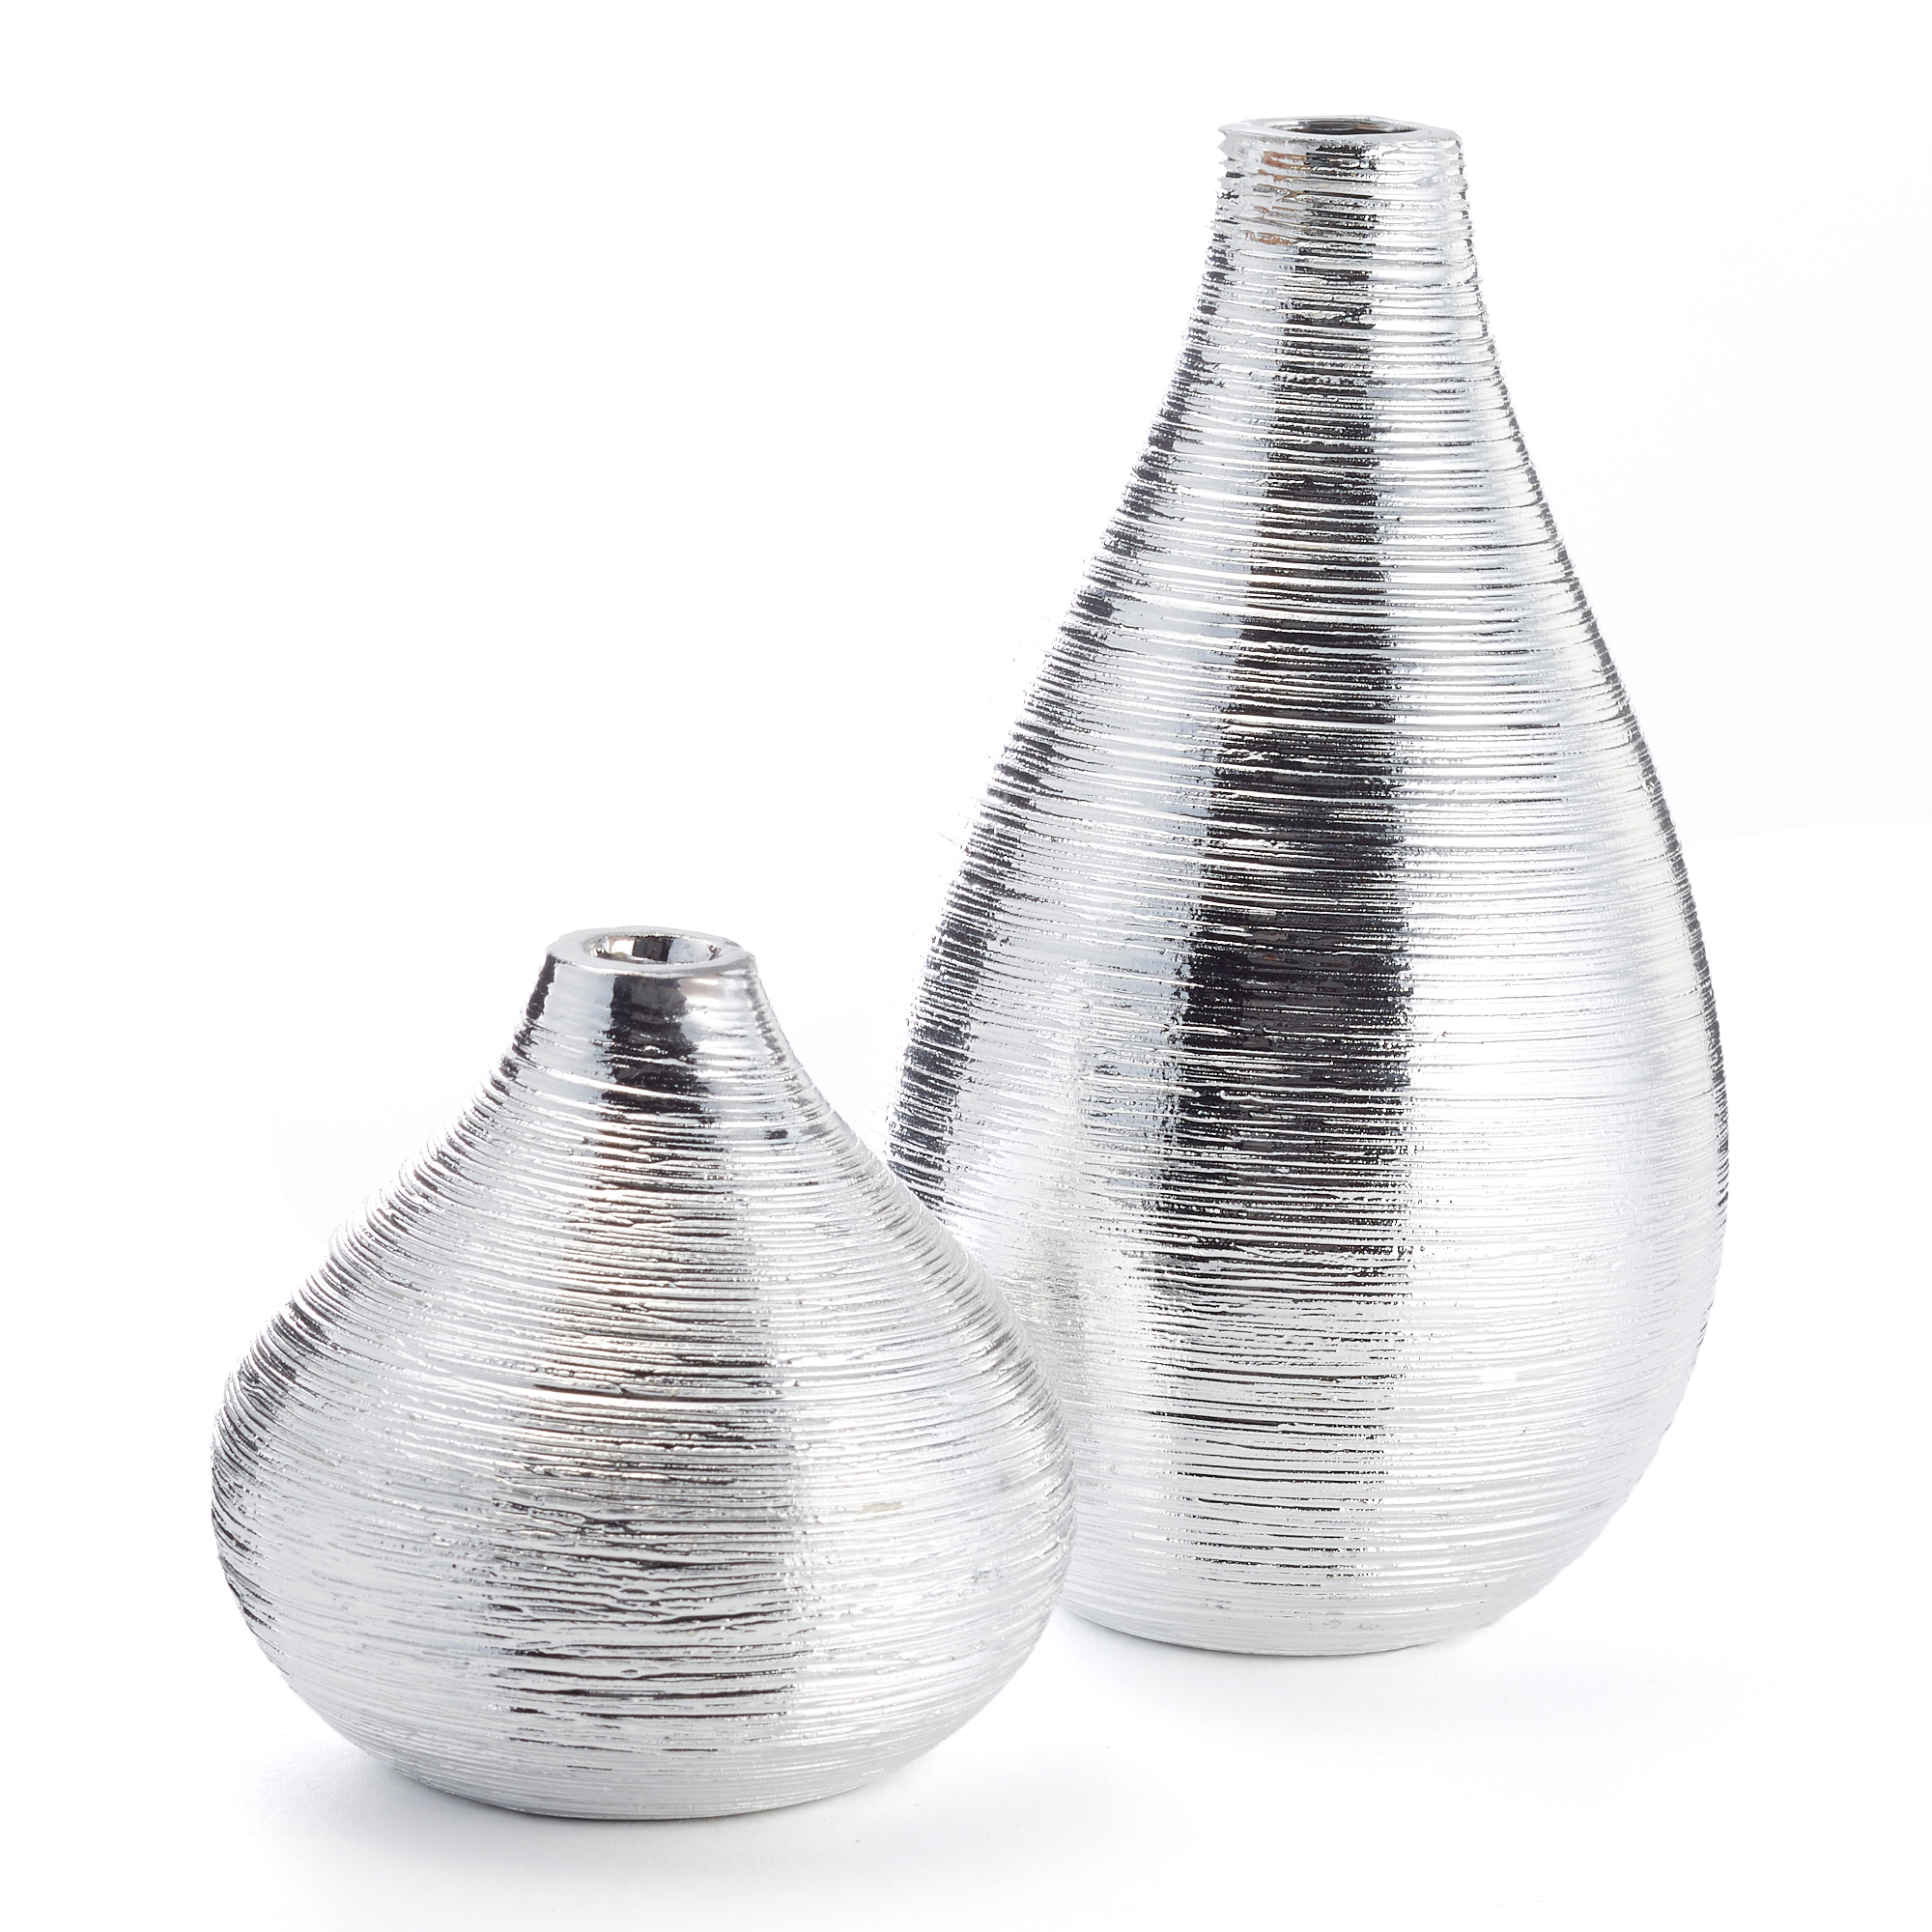 Atrion Vases, Set of 2